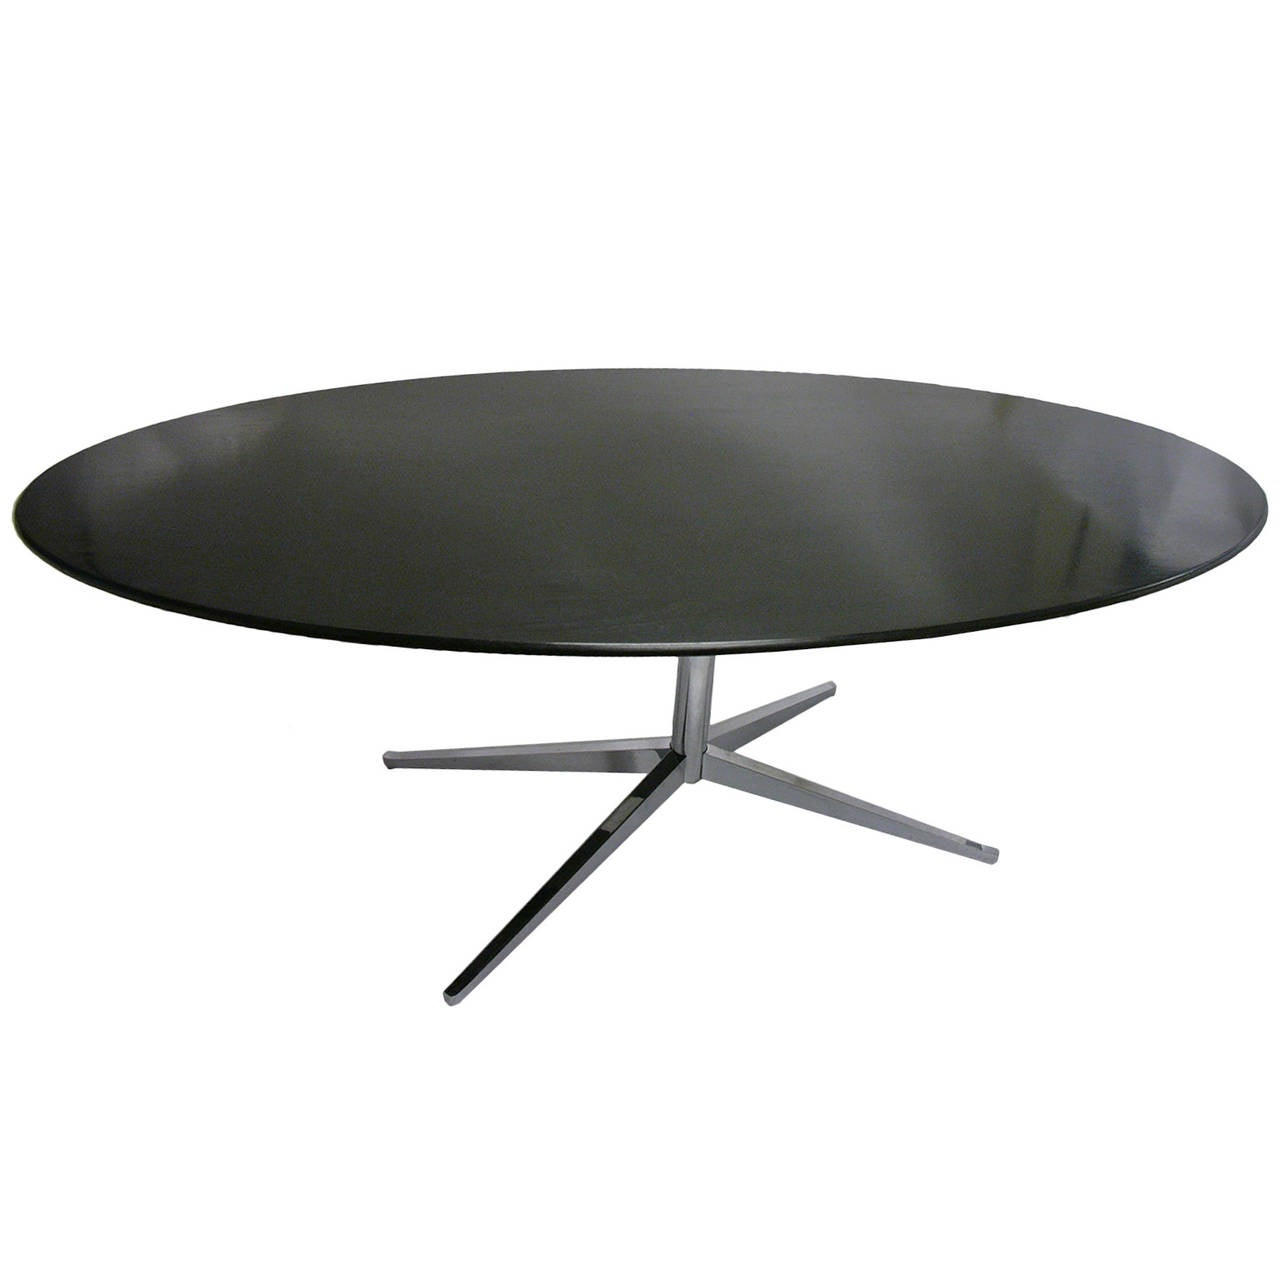 large florence knoll oval dining table in ebonized oak at 1stdibs. Black Bedroom Furniture Sets. Home Design Ideas